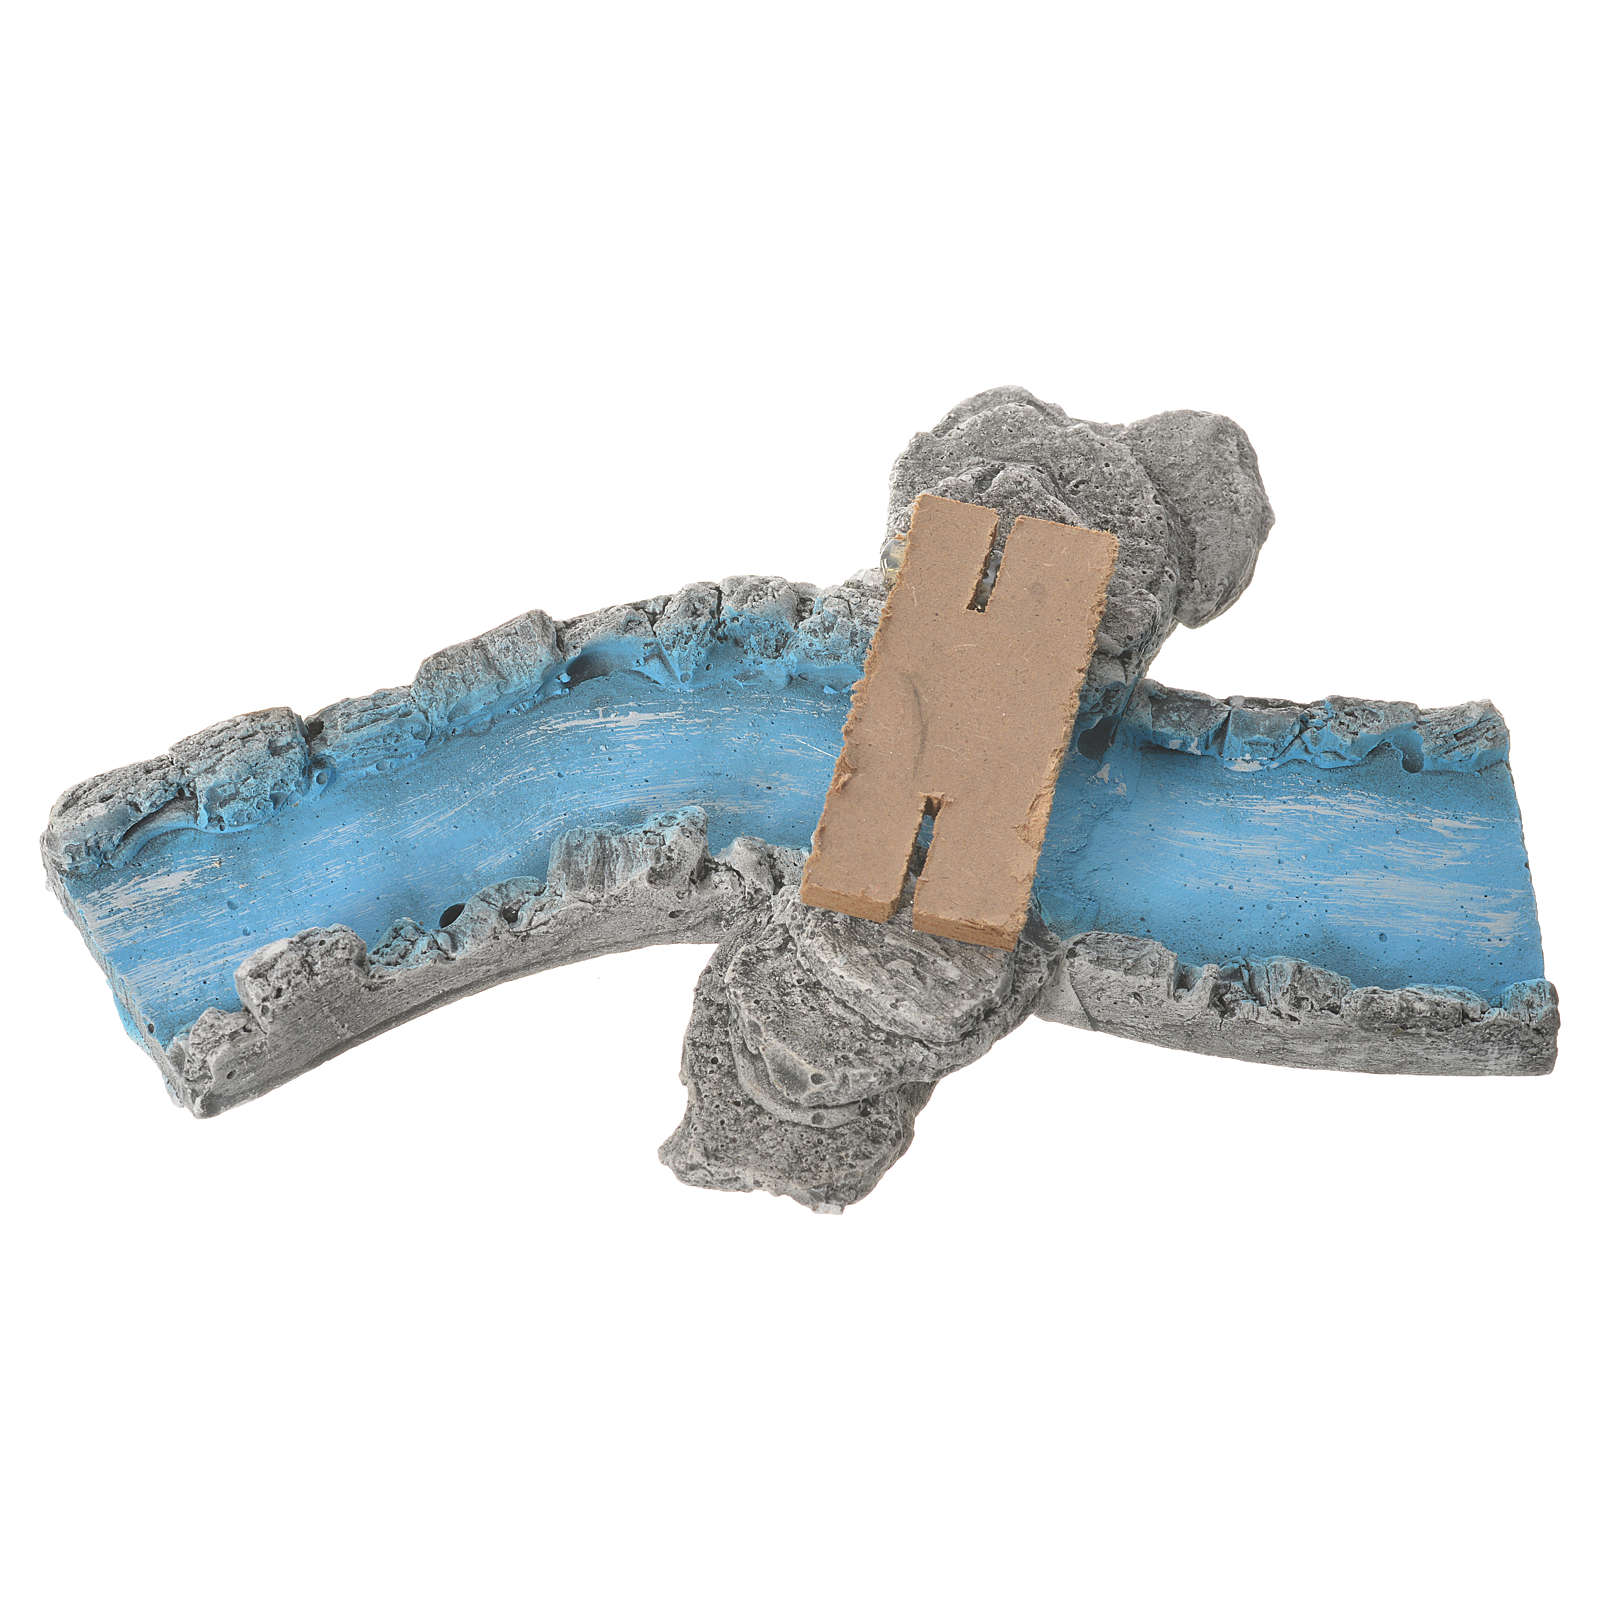 Nativity setting, river parts in plaster 4 pcs 4